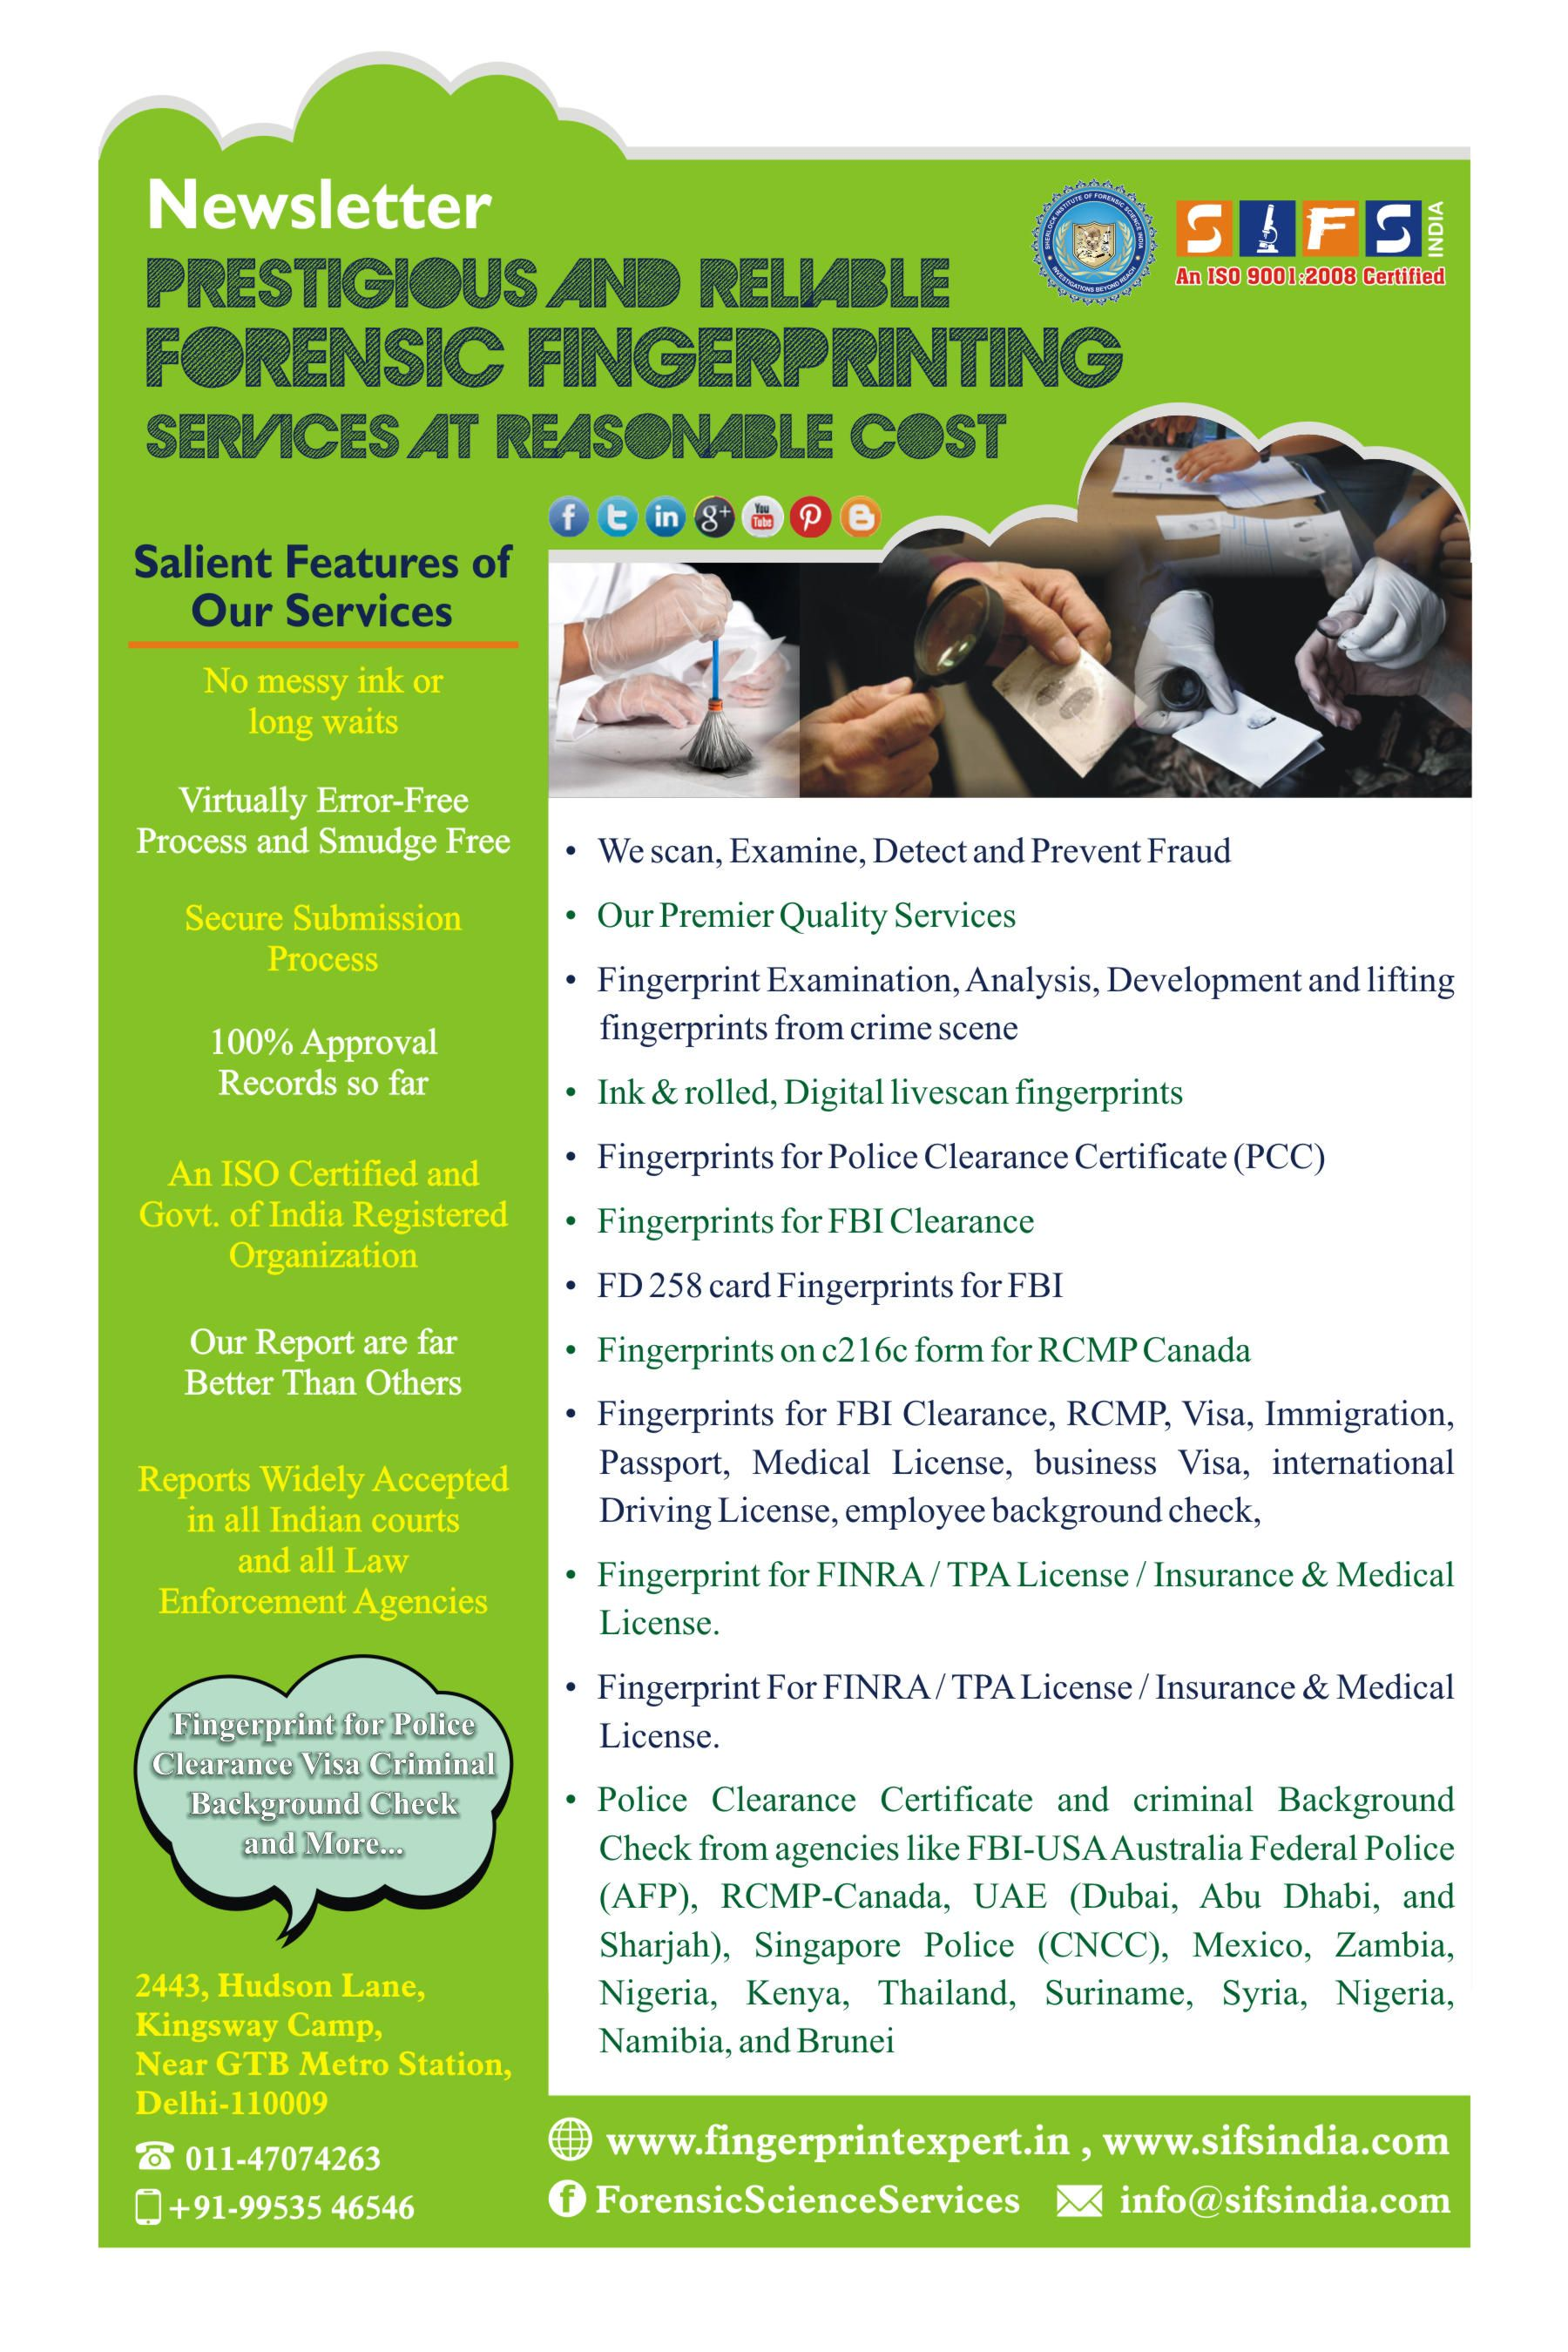 Forensic Science Services Sifs India Is Known To Provides Eminent